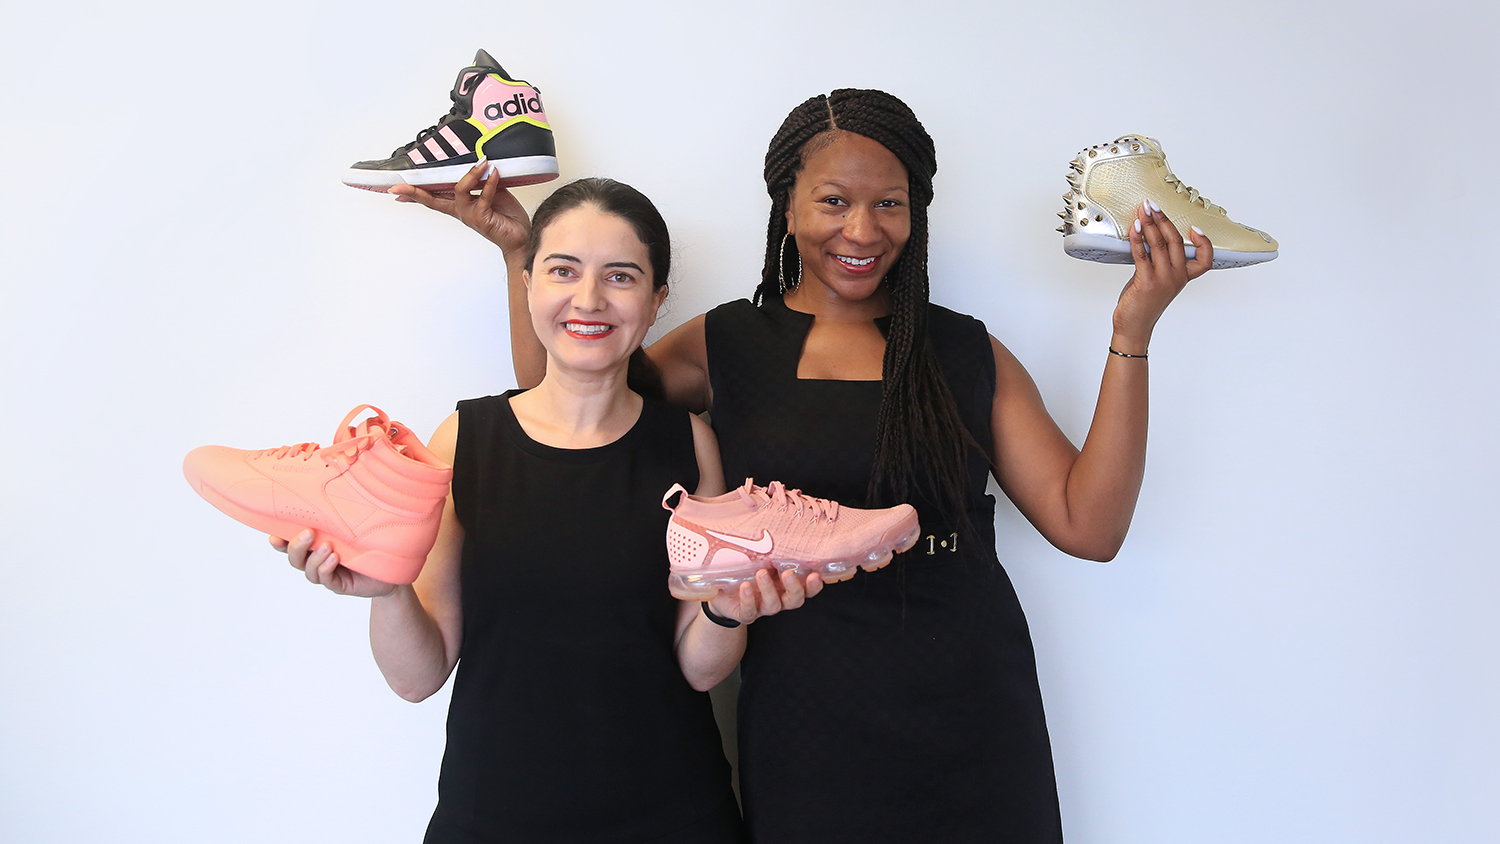 TATM assistant professor Delisia Matthews and Ph.D. student Nimet Degirmencioglu holding 4 different sneakers